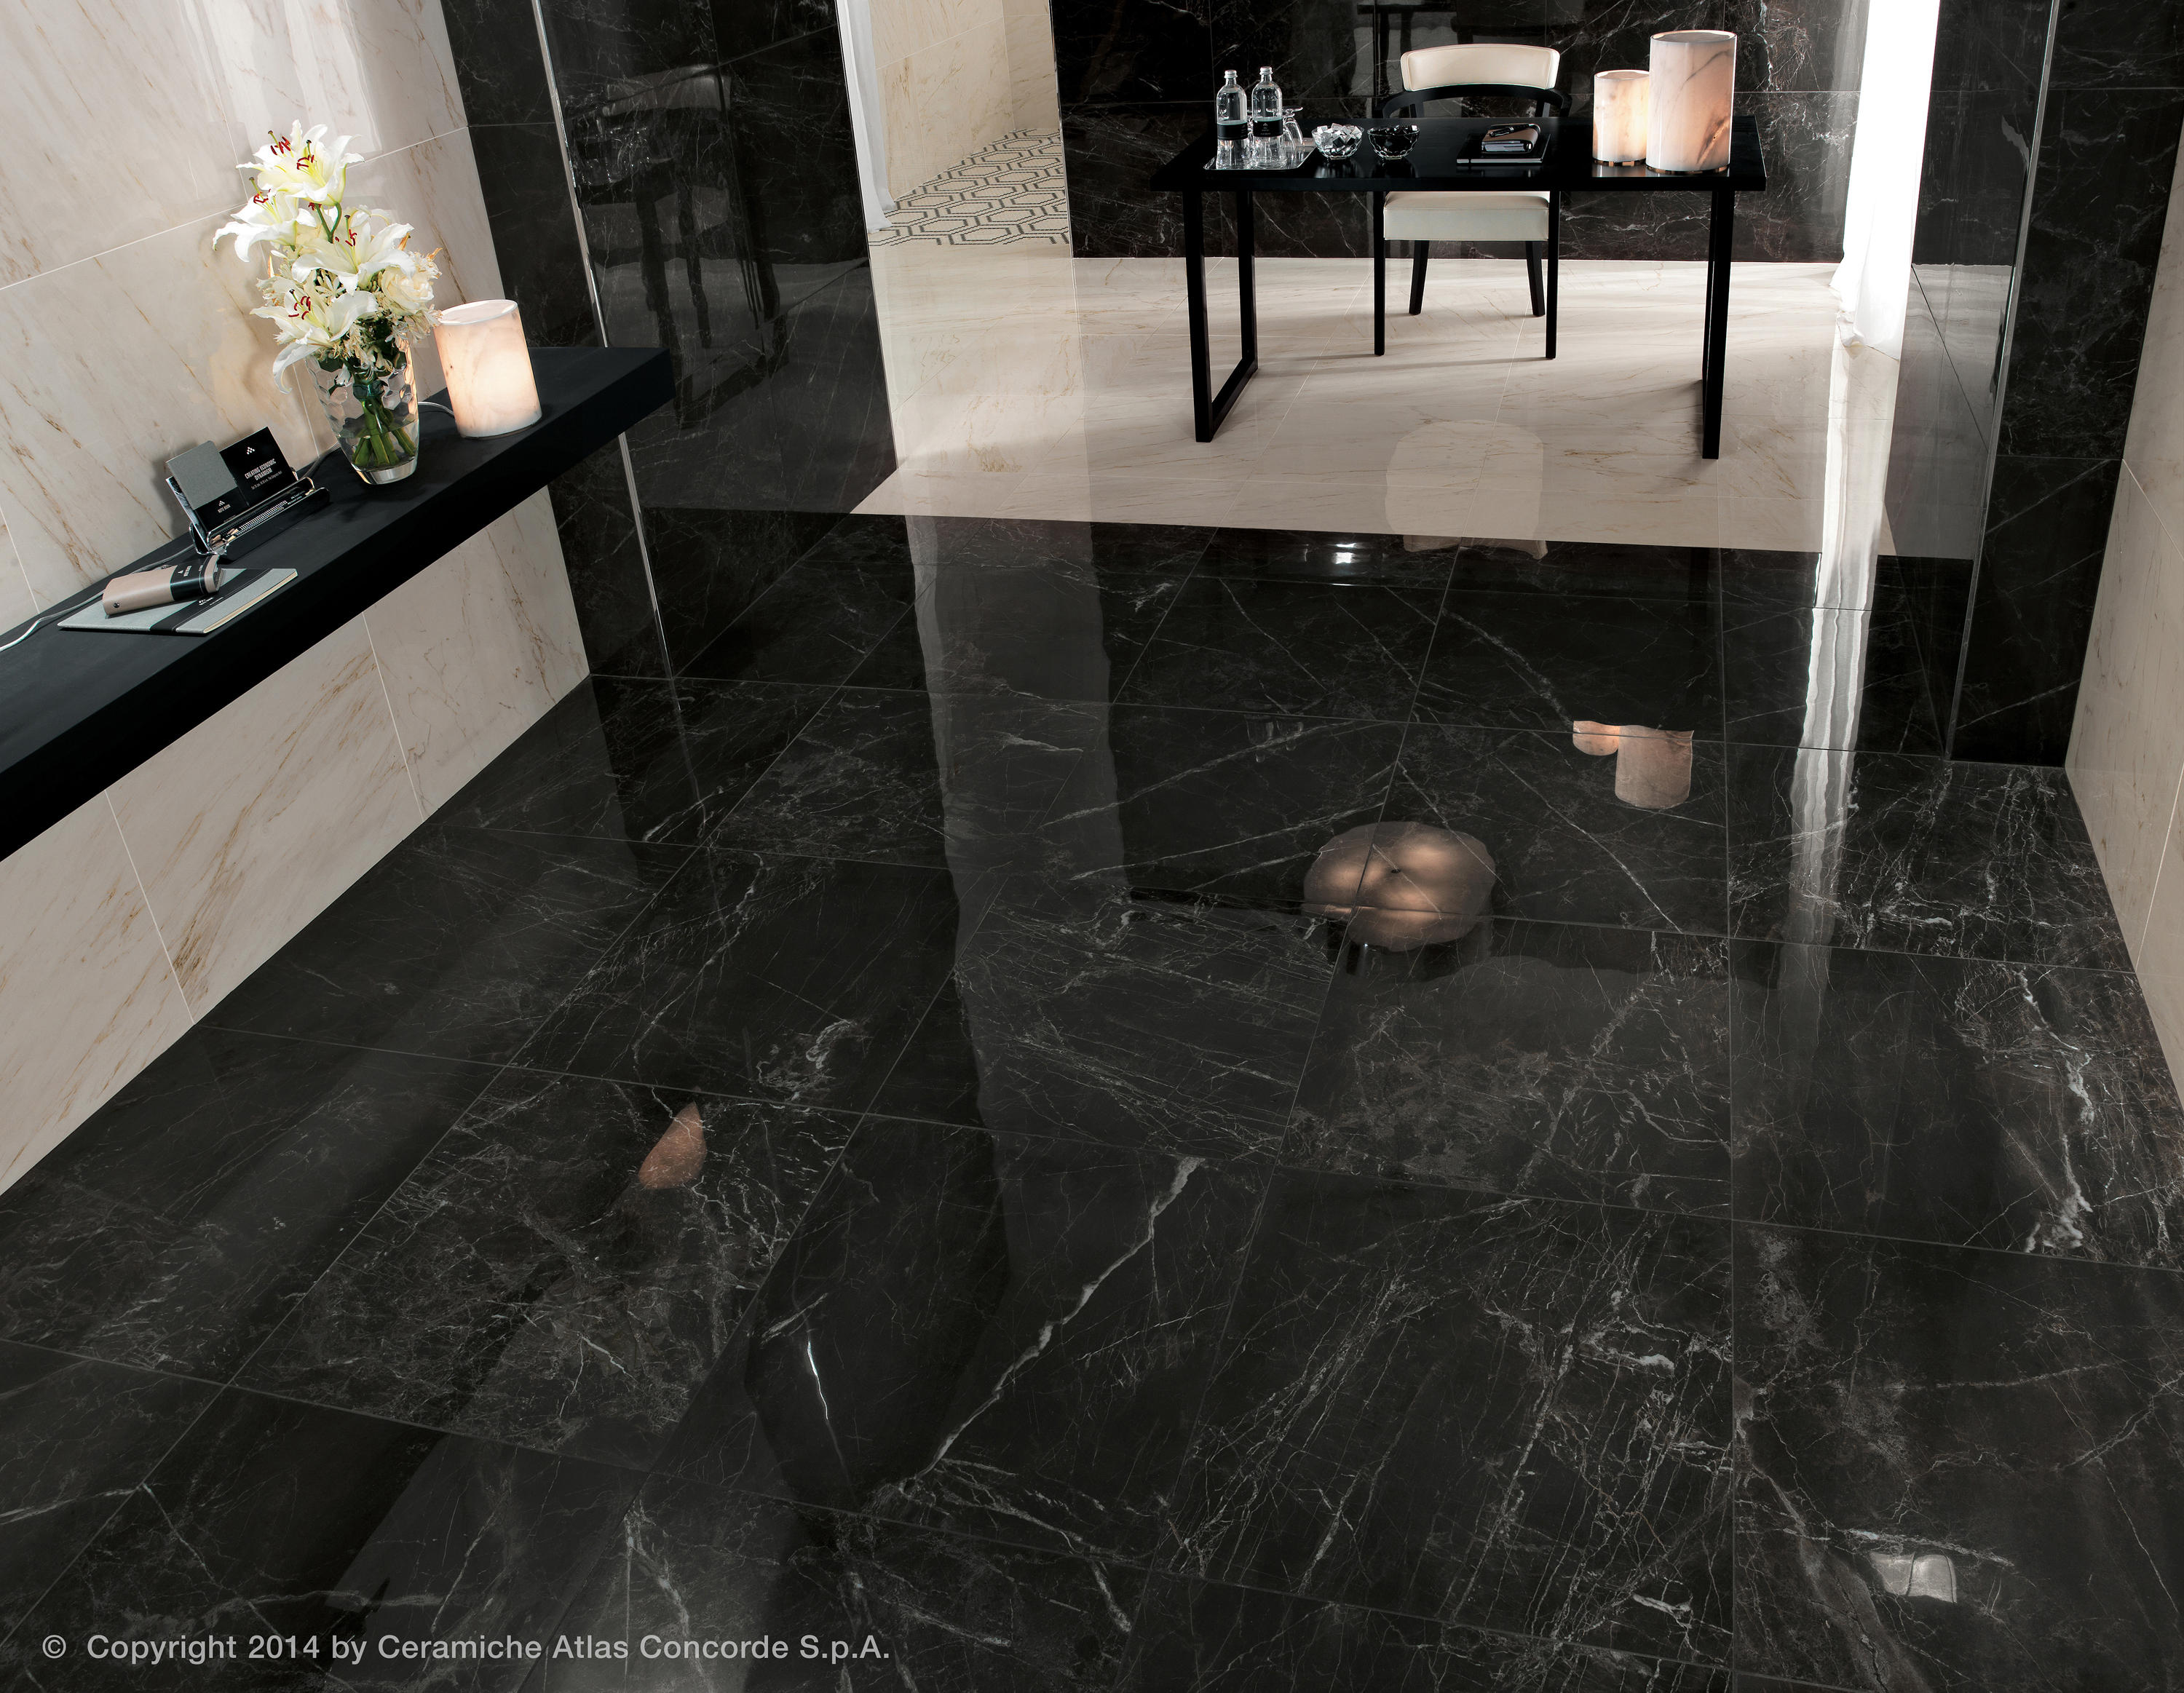 Marvel pro statuario select ribbon ceramic tiles from for Carrelage en marbre noir